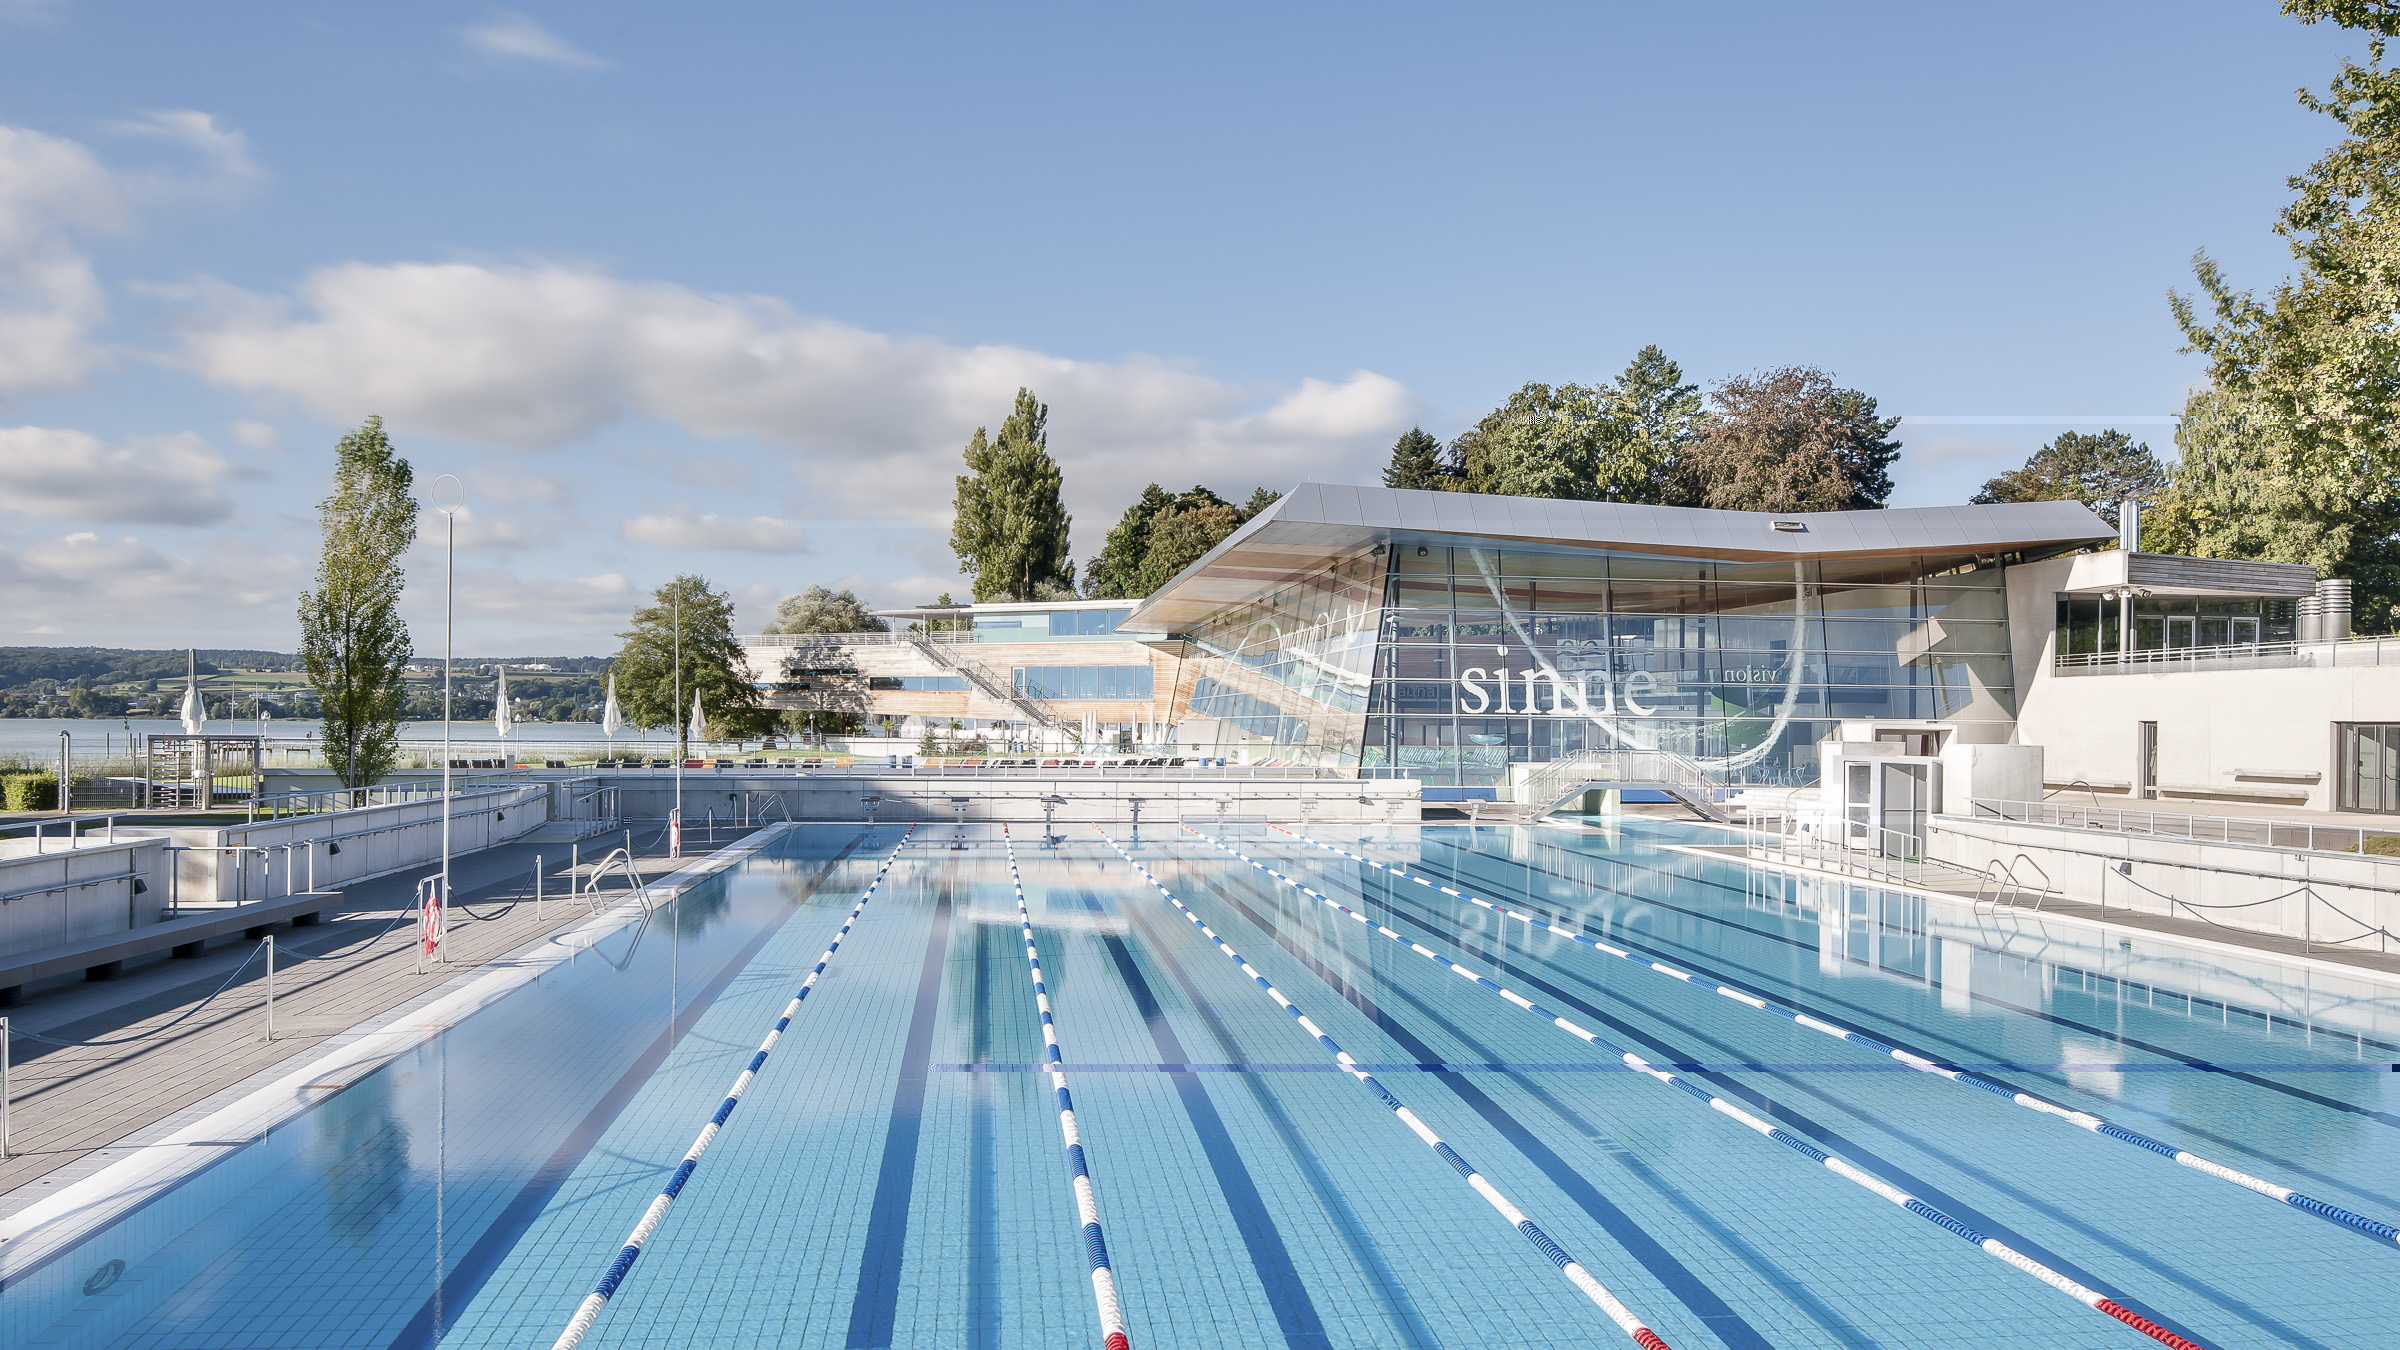 Bodensee Therme Konstanz Patrick Weber Photography